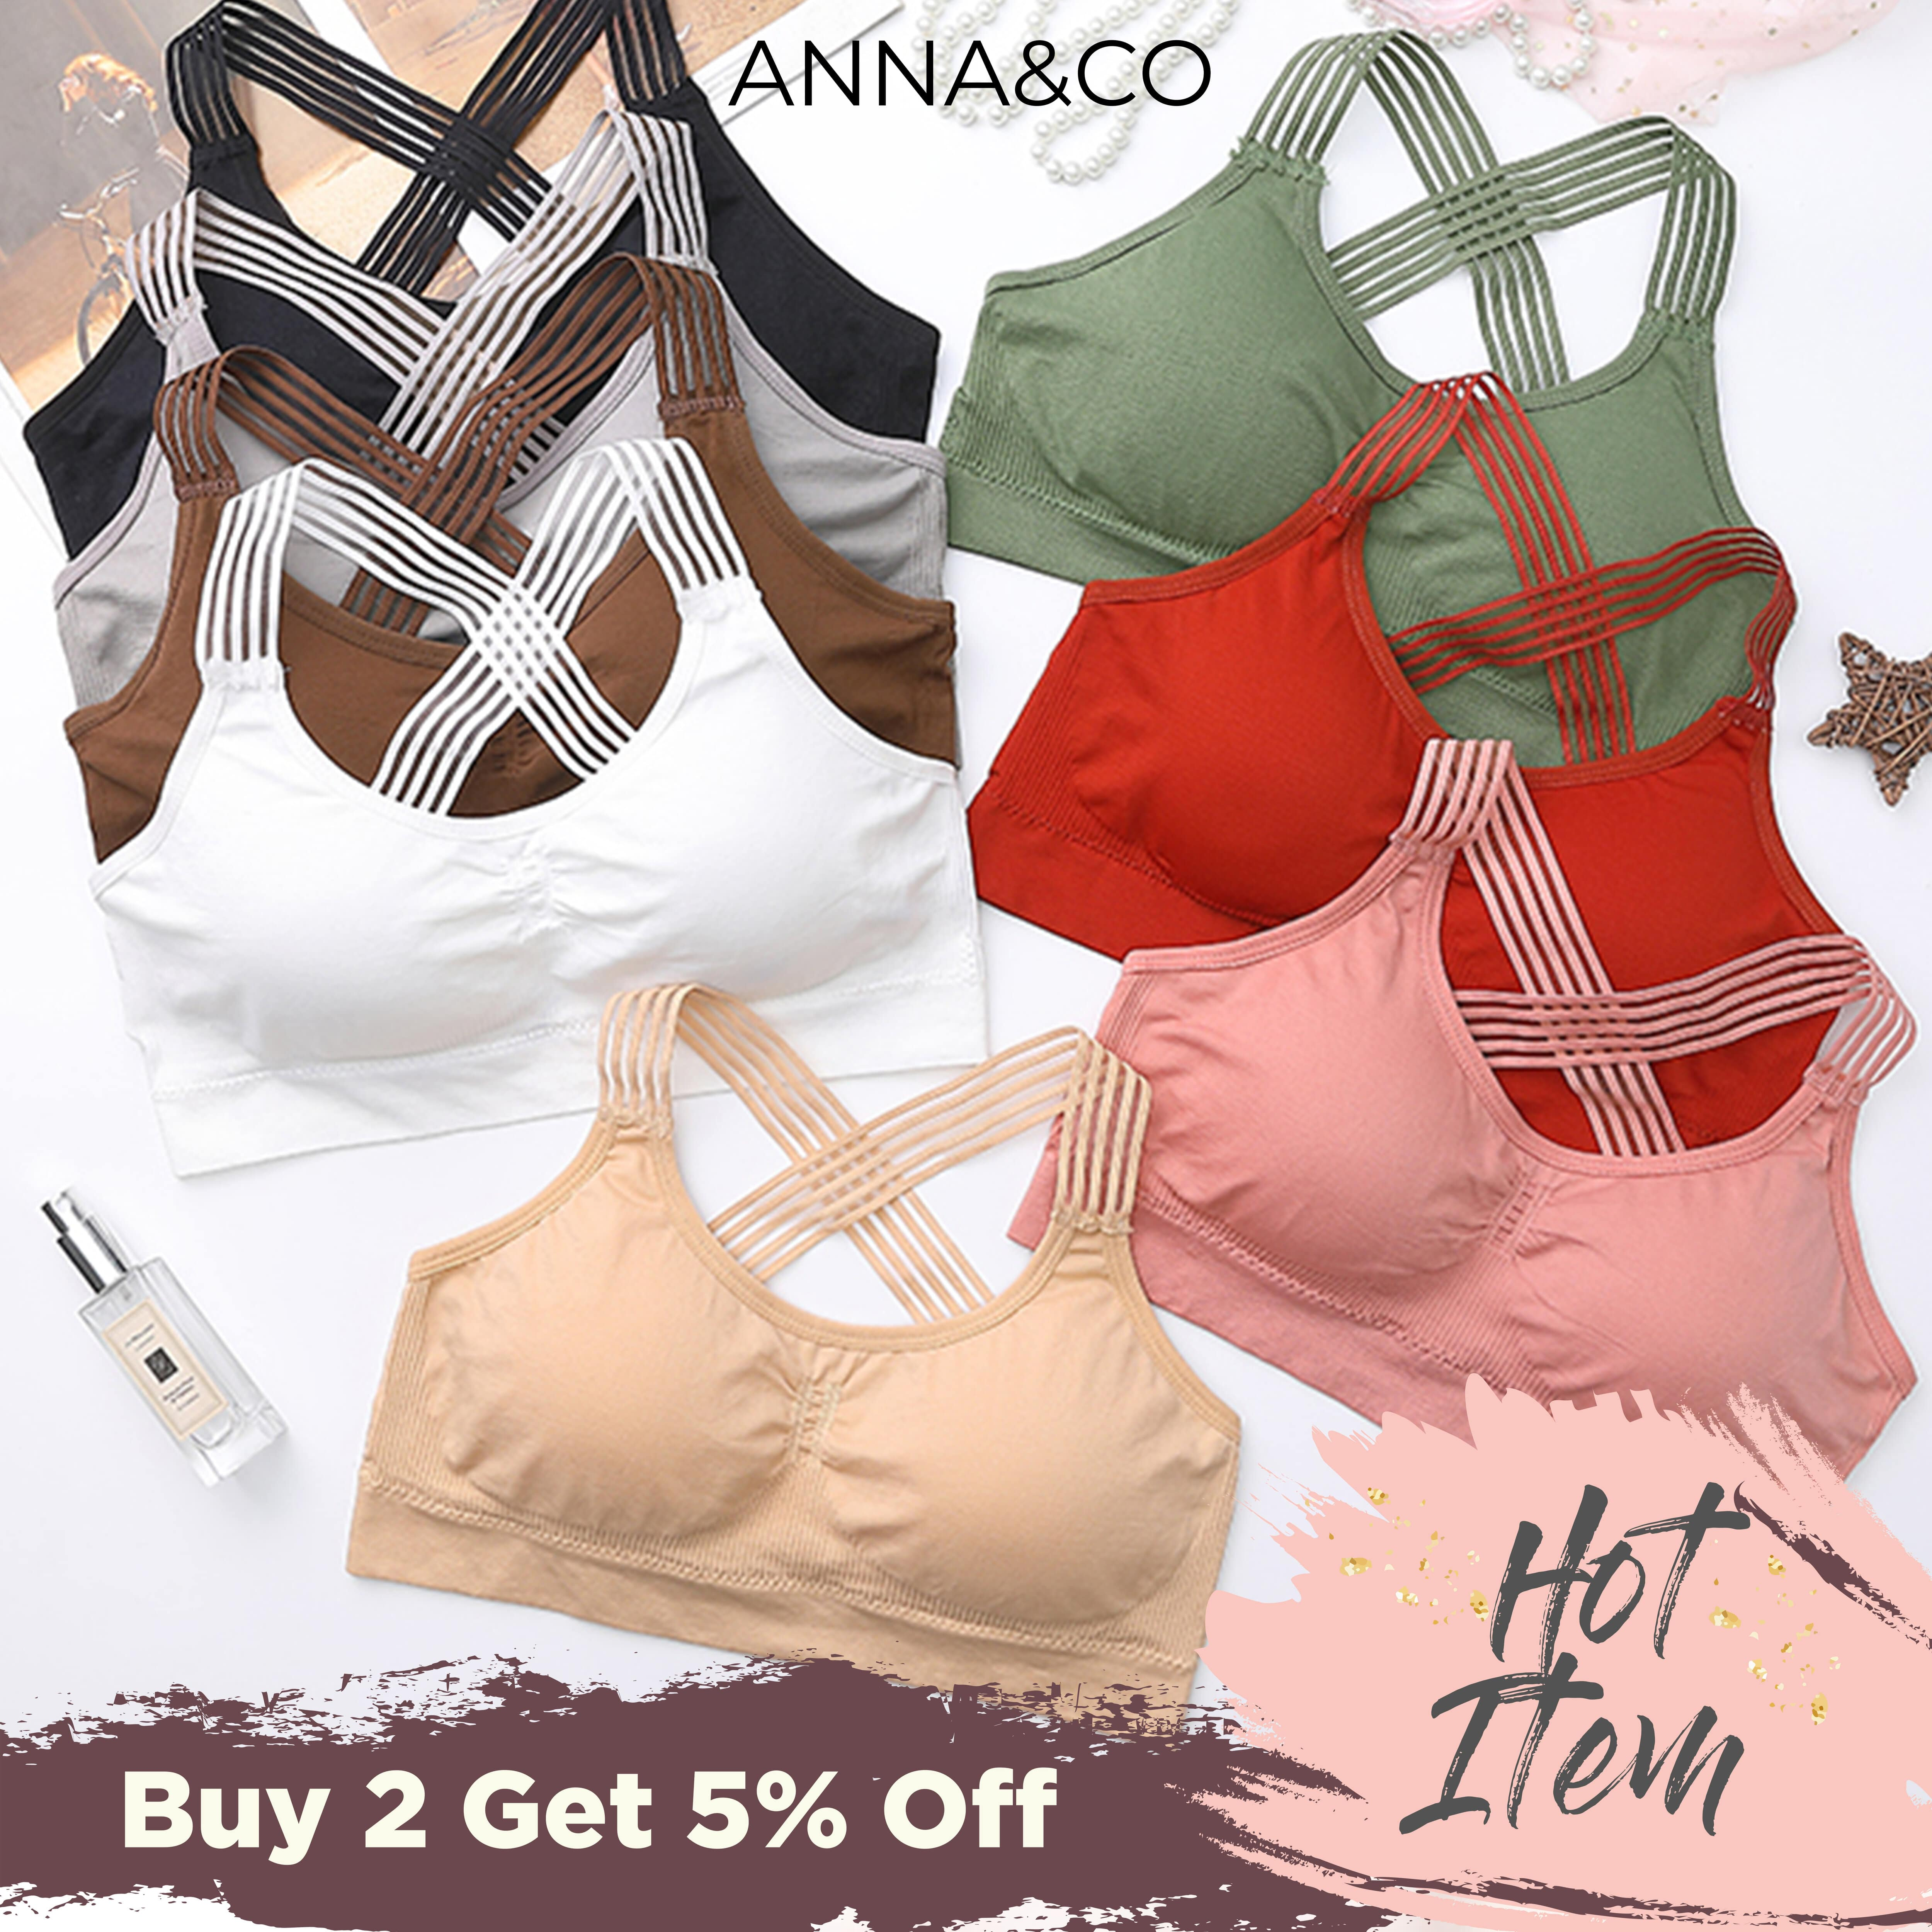 [NEW ARRIVAL READY STOCK]AnnaCo Women Bras Fine Luxury Premium lingerie Stretchable Korean Style Wireless Seamless 3D Push Up Breathable Singlet type Sport Bra with Removable Pads Stretchable Across Strip Bra Full Cup One Size Easy Wearing ONE SIZE 1871